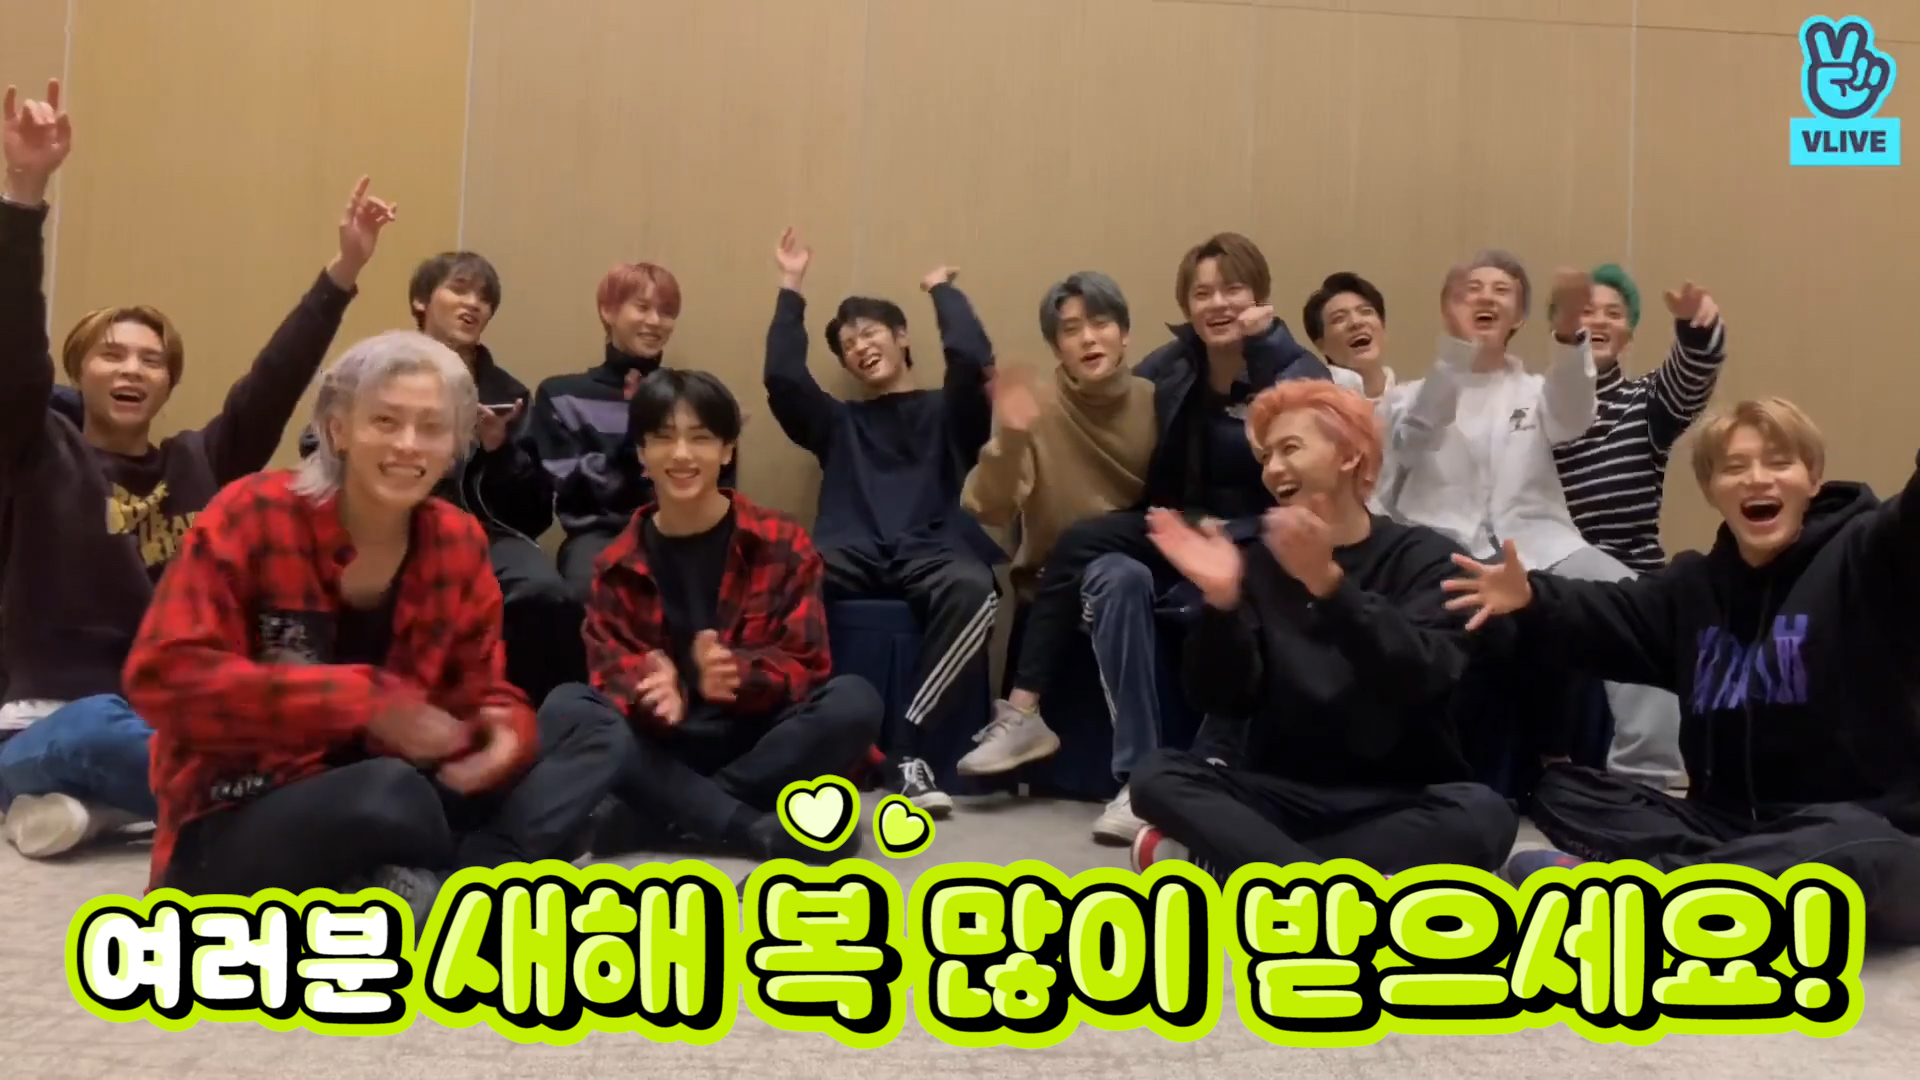 [NCT] 올해도(쉼표,) 엔시티와 함께 행복하게 2020년 보내요(느낌표!) (NCT's V after the year-end stage)